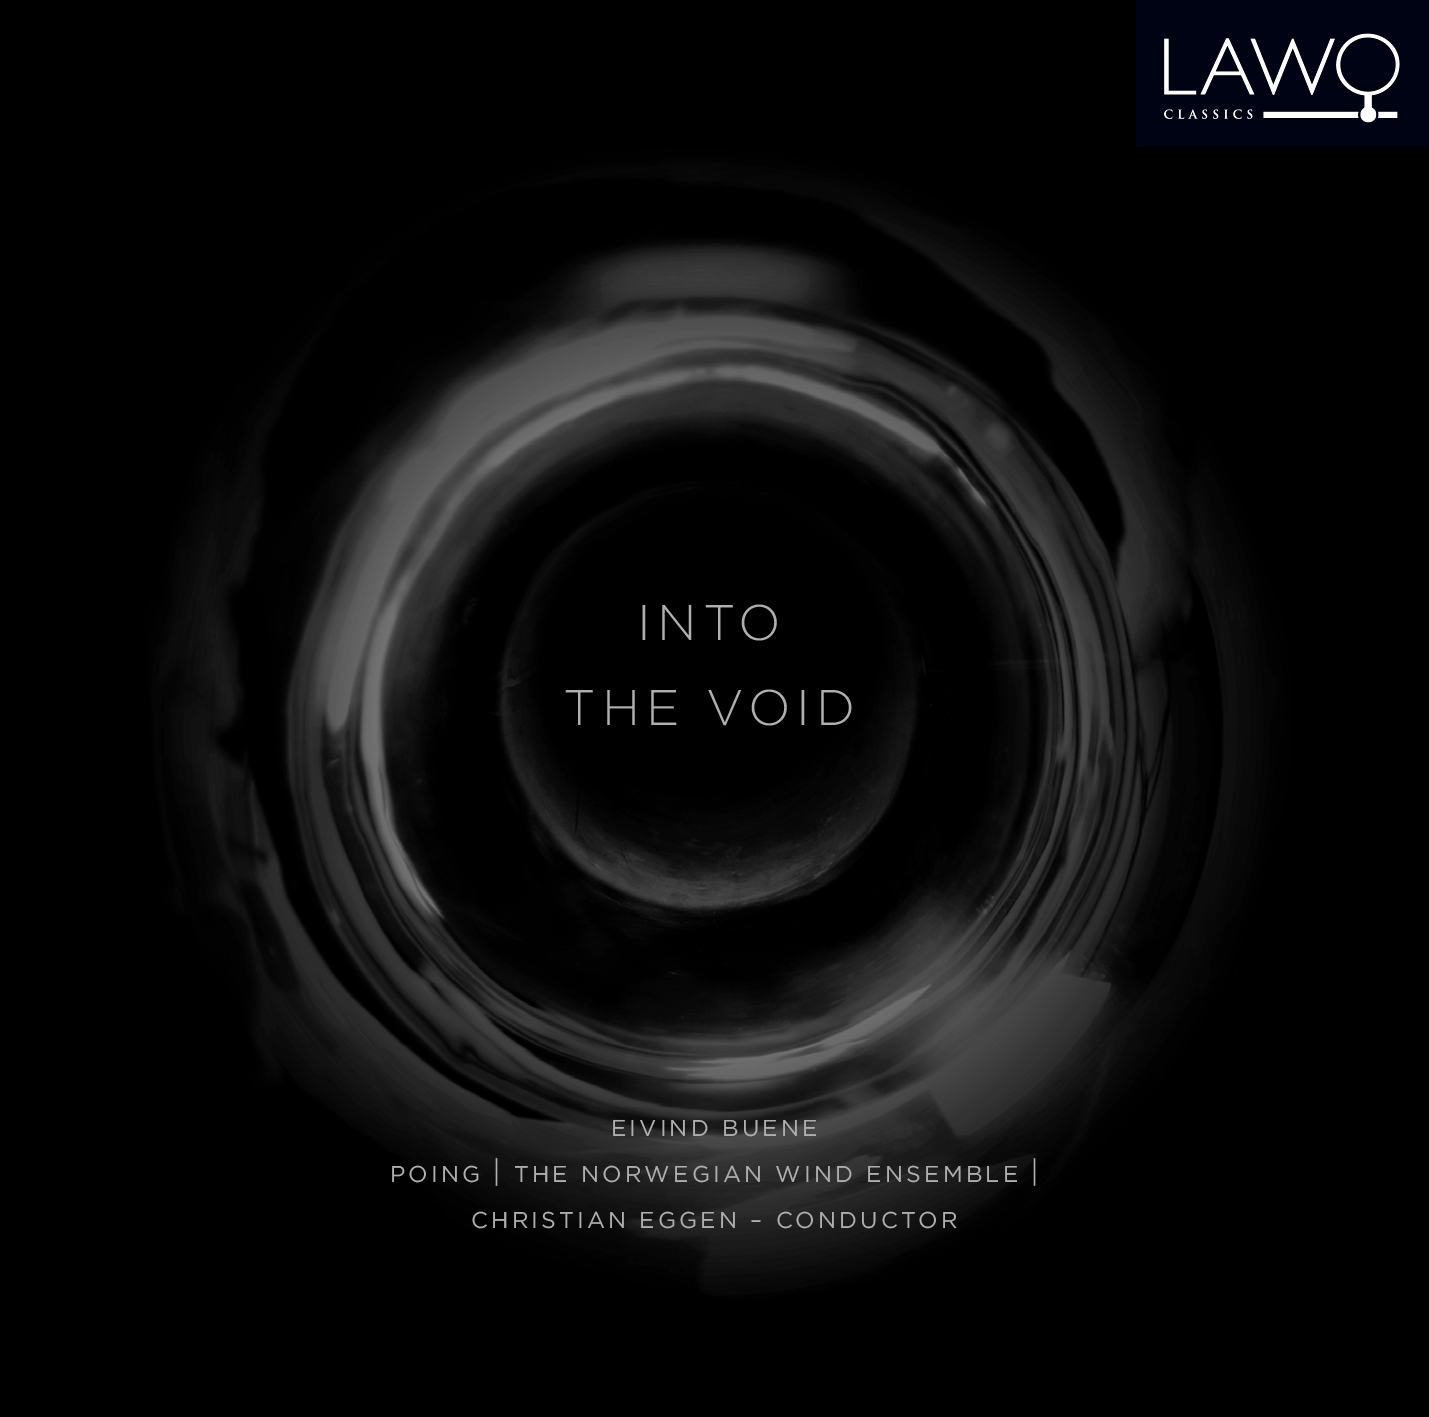 Challenge Records International - Into the Void - POING / The